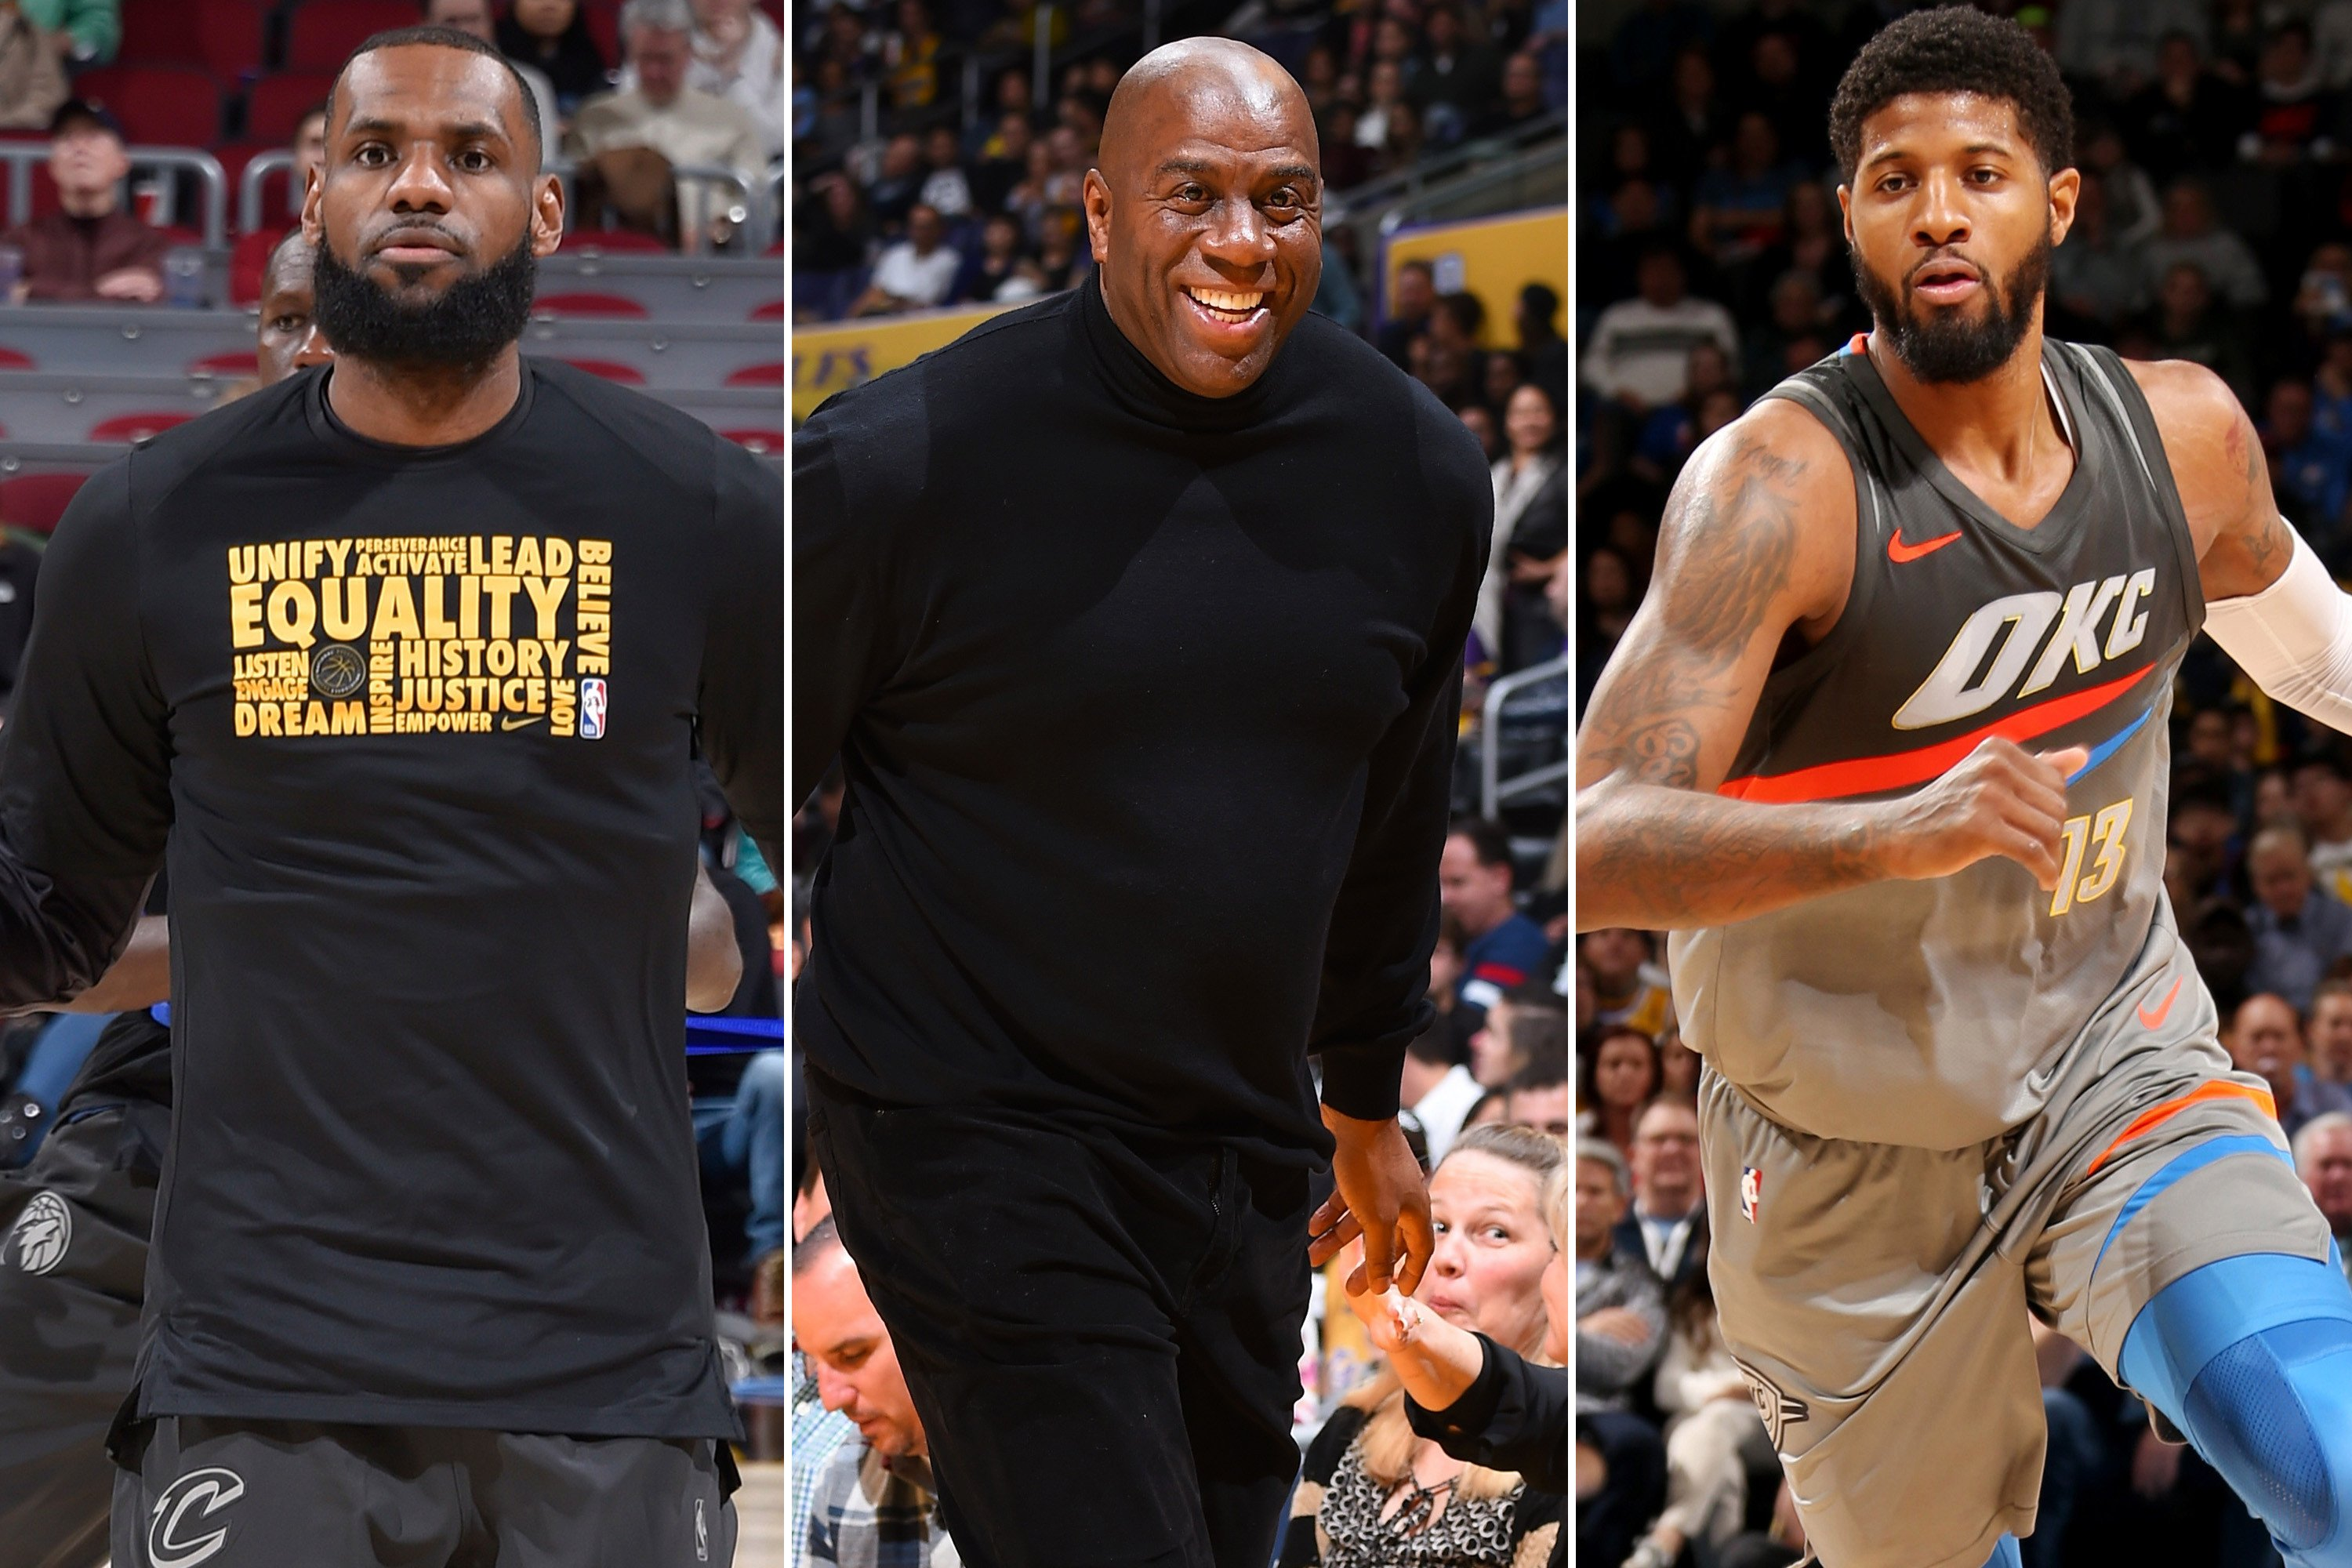 Lakers are ready for super-team push after Cavaliers trade